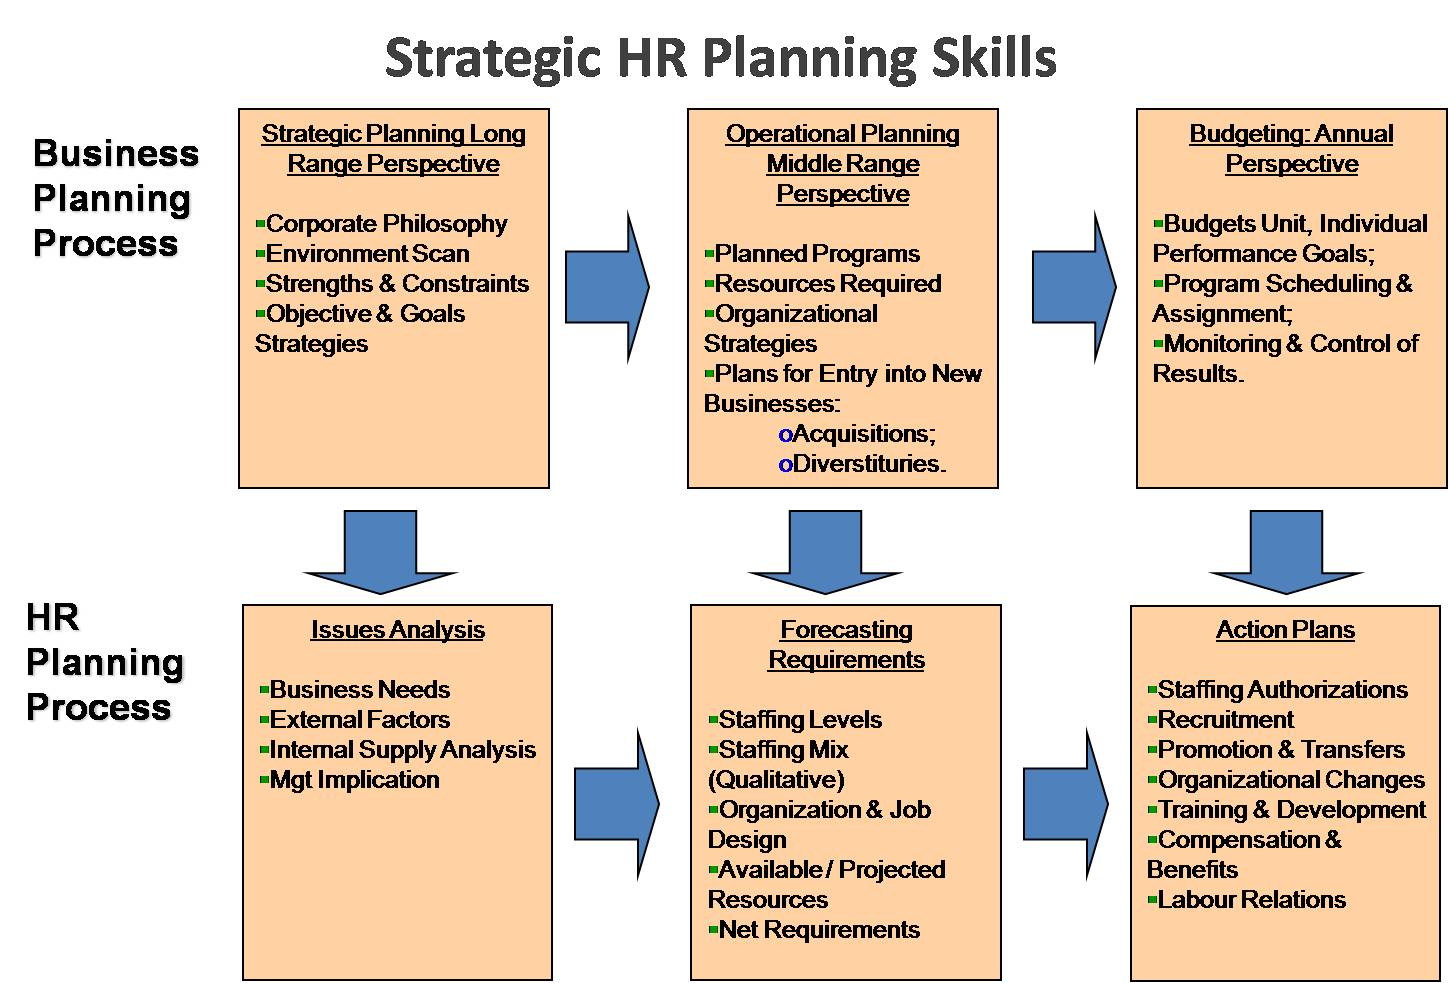 hr planning Hr strategic plan 2015-2019 university of california human resources set of steps triggered by an occurrence dominated by rules and standards typically one right answer something happens we have to fix external influence drives action crisis management target set.